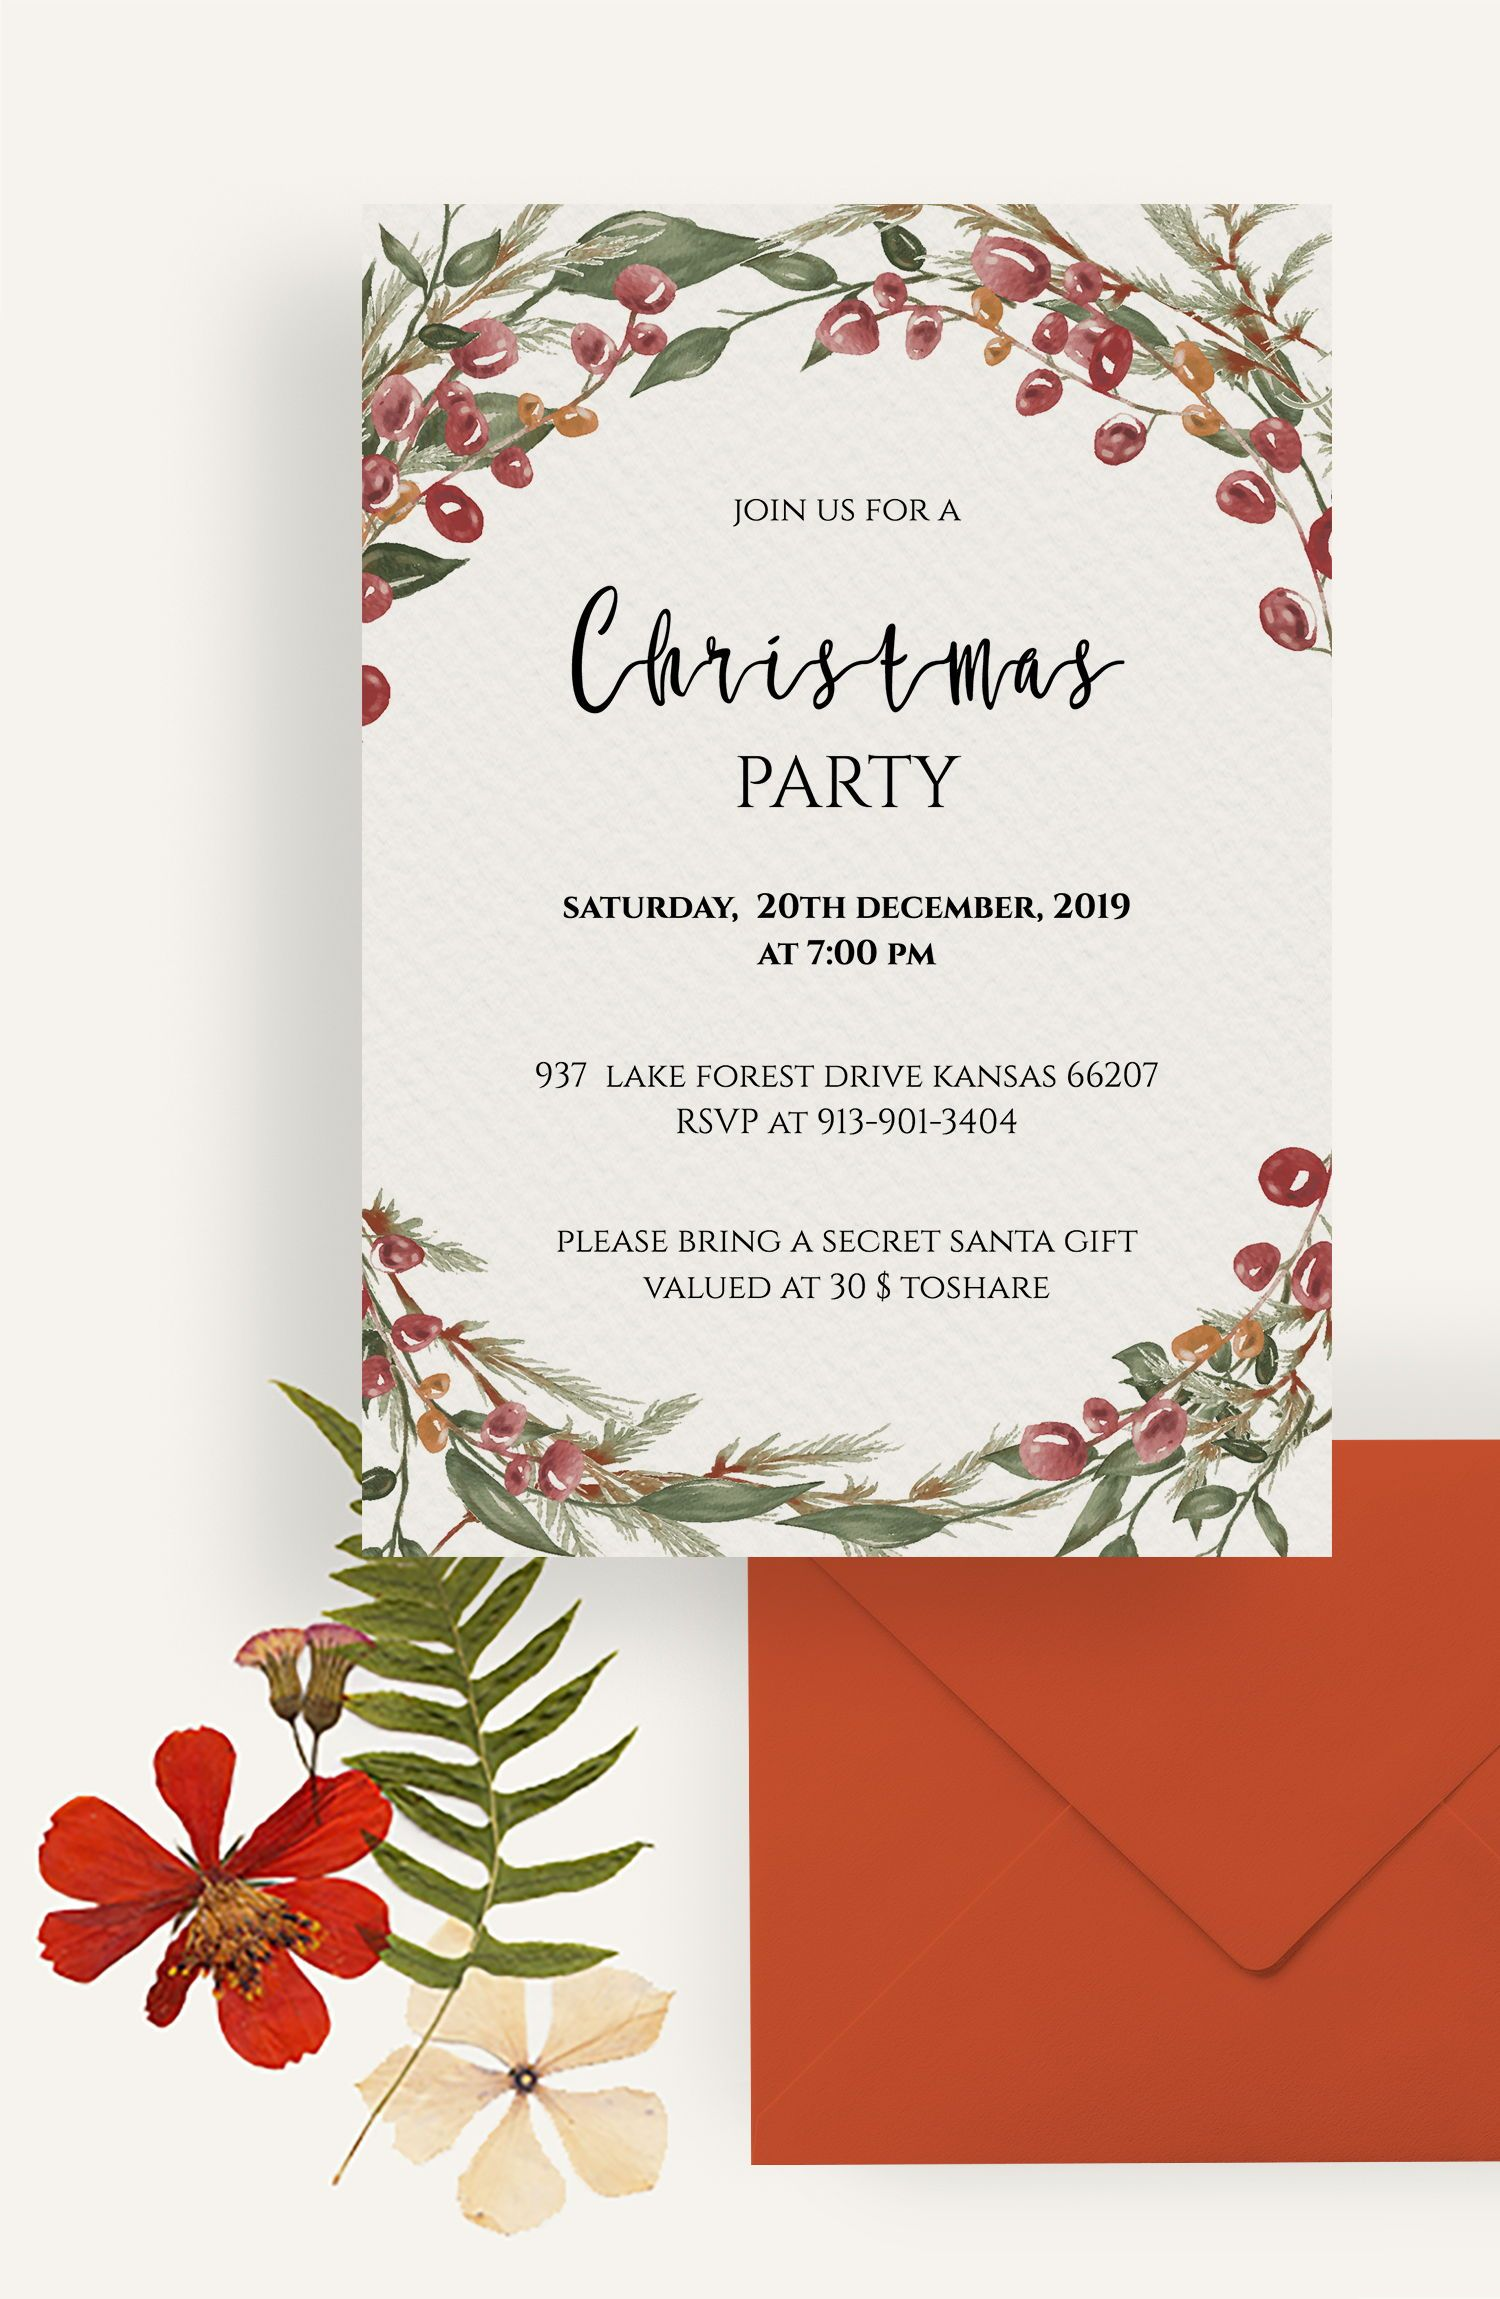 Editable Downloadable Invitation Templates